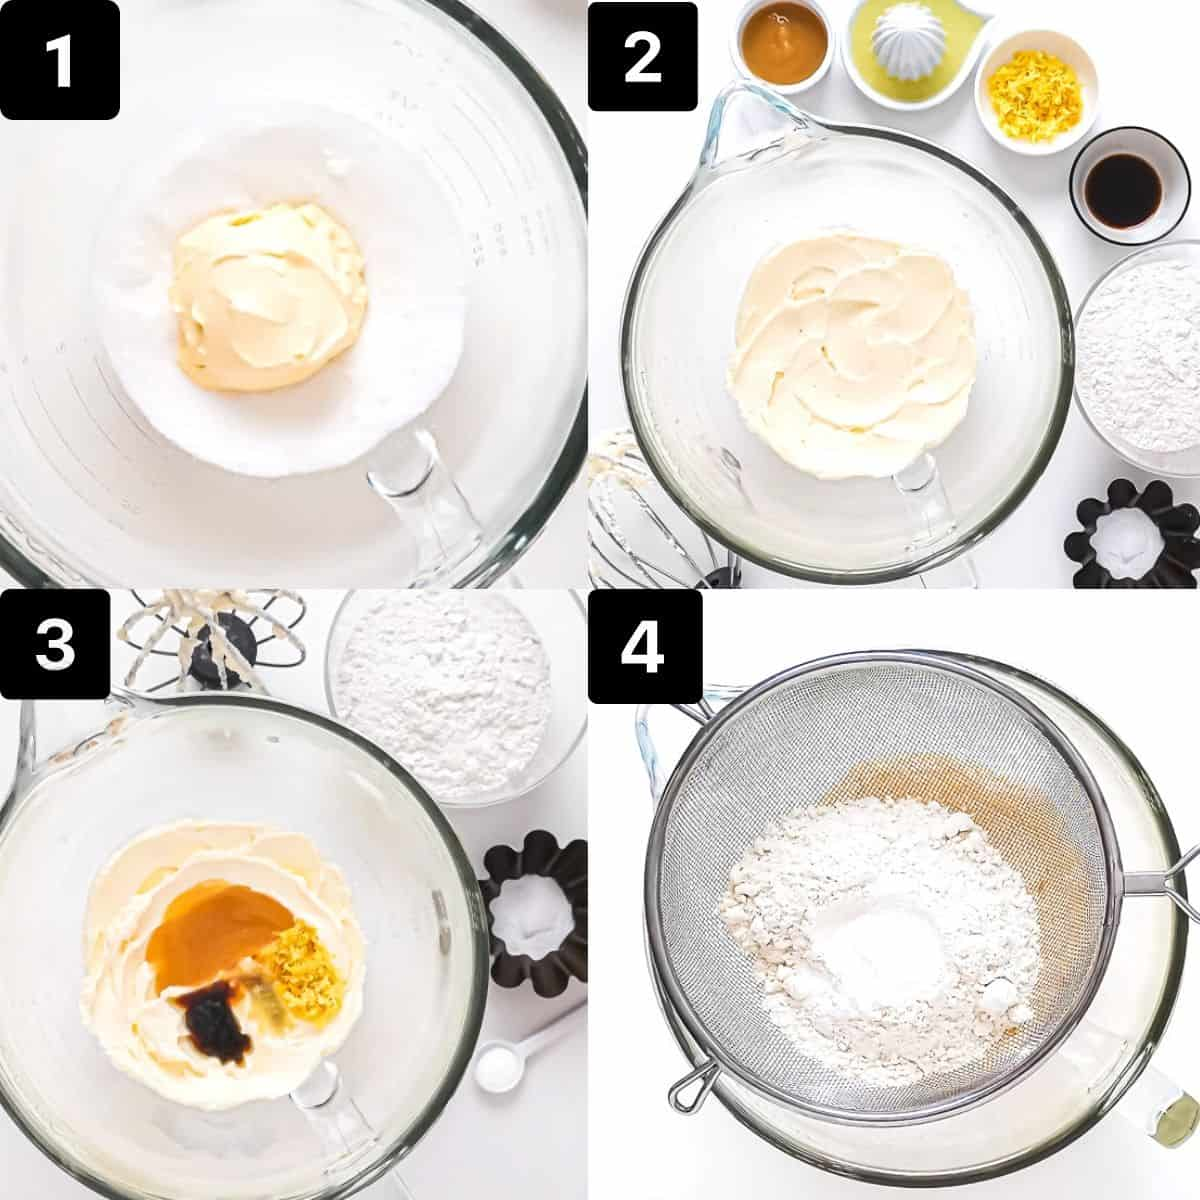 Step by step to make cookies: mix butter-sugar, add wet ingredients, sift in dry ingredients and mix.